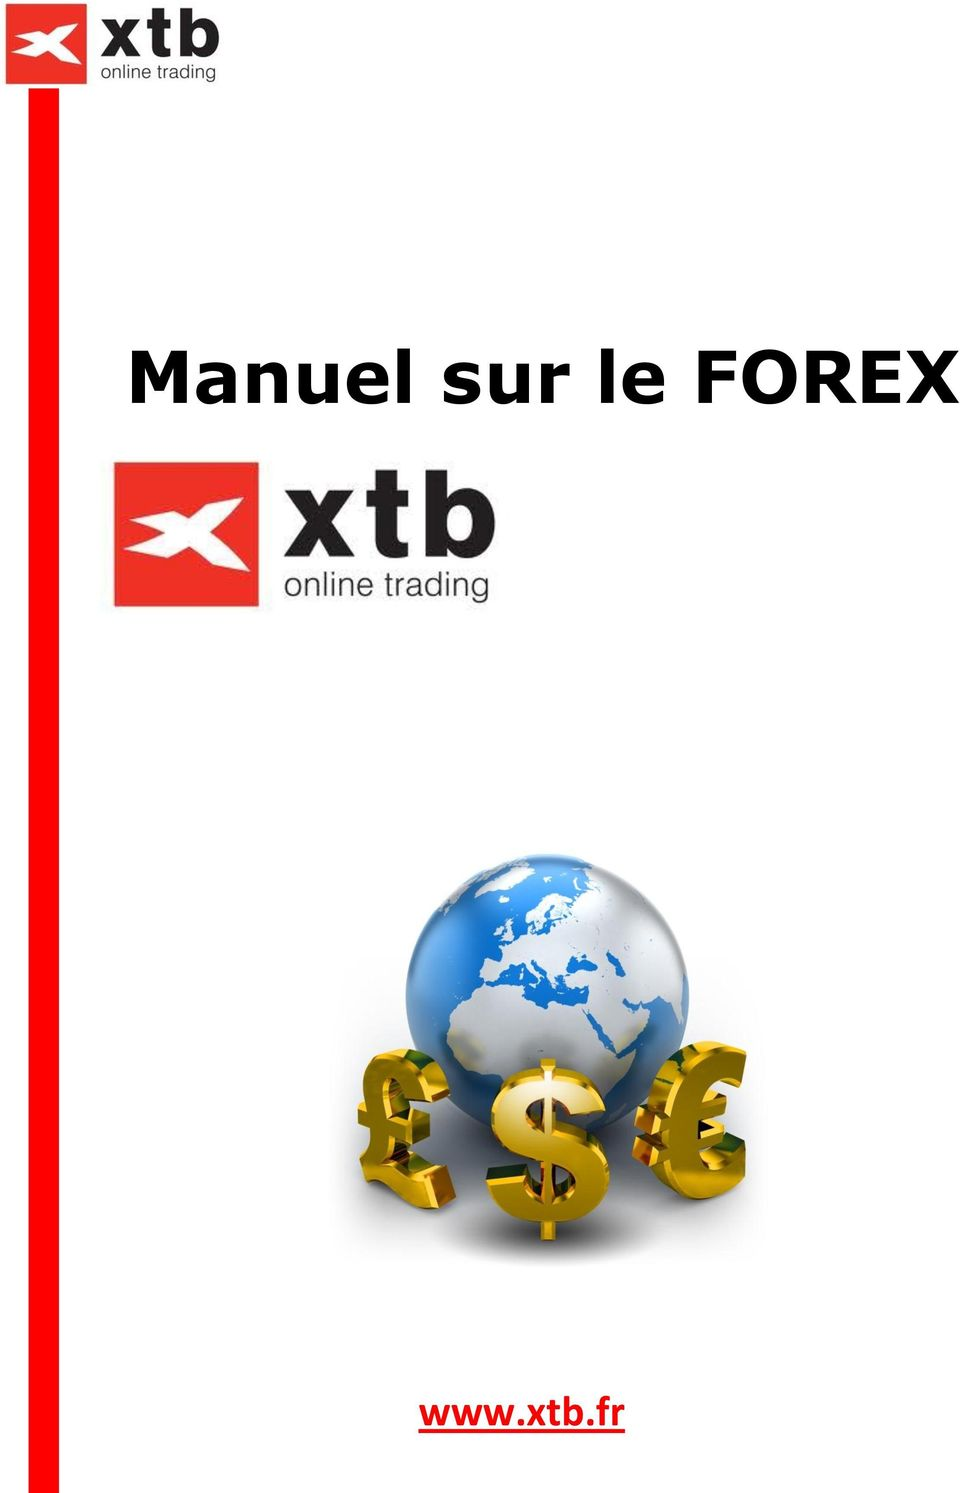 Meilleur site day trading